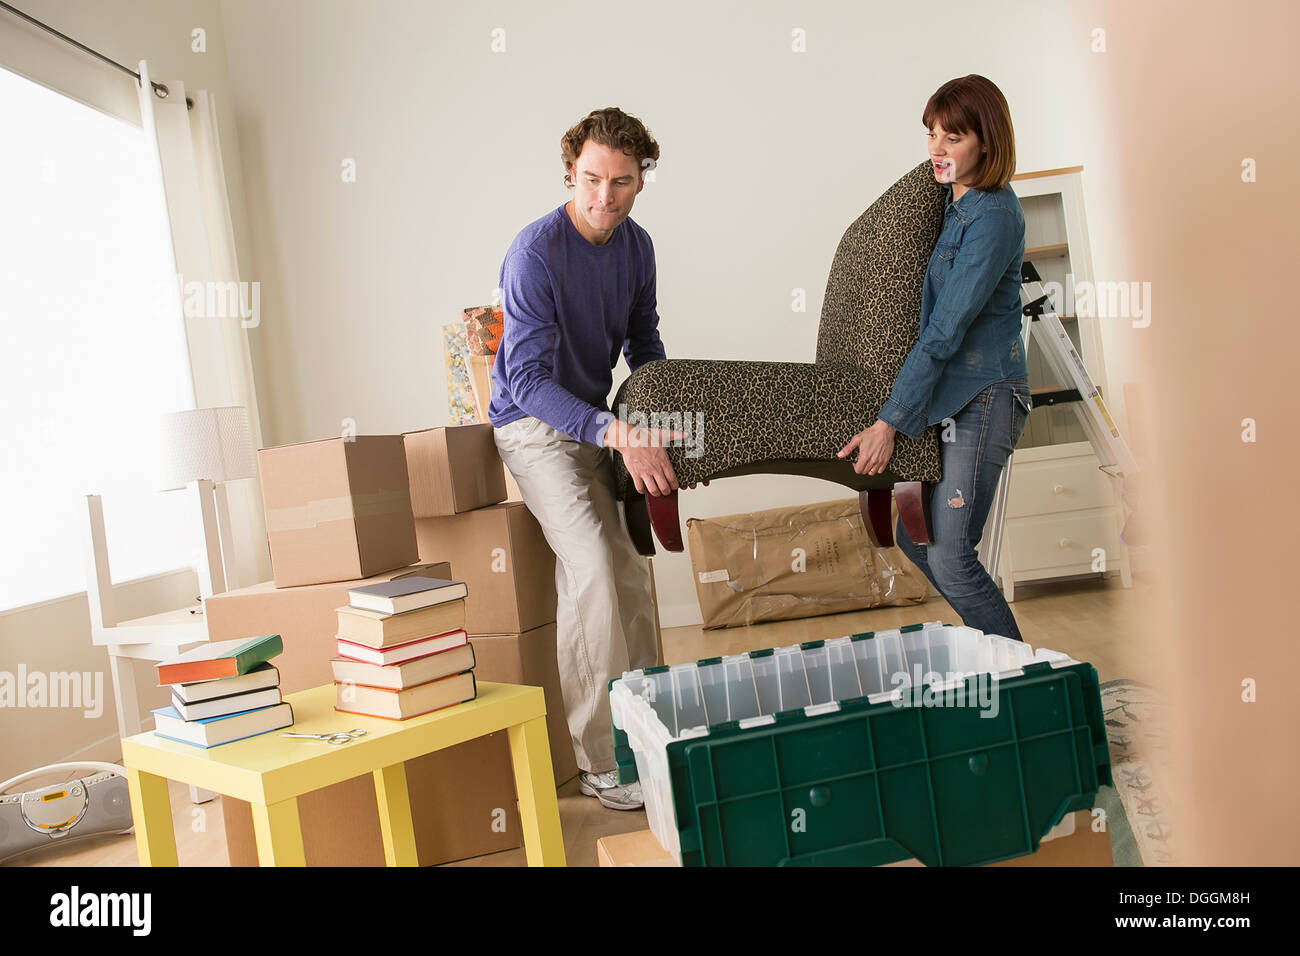 Couple lifting chair in house move - Stock Image